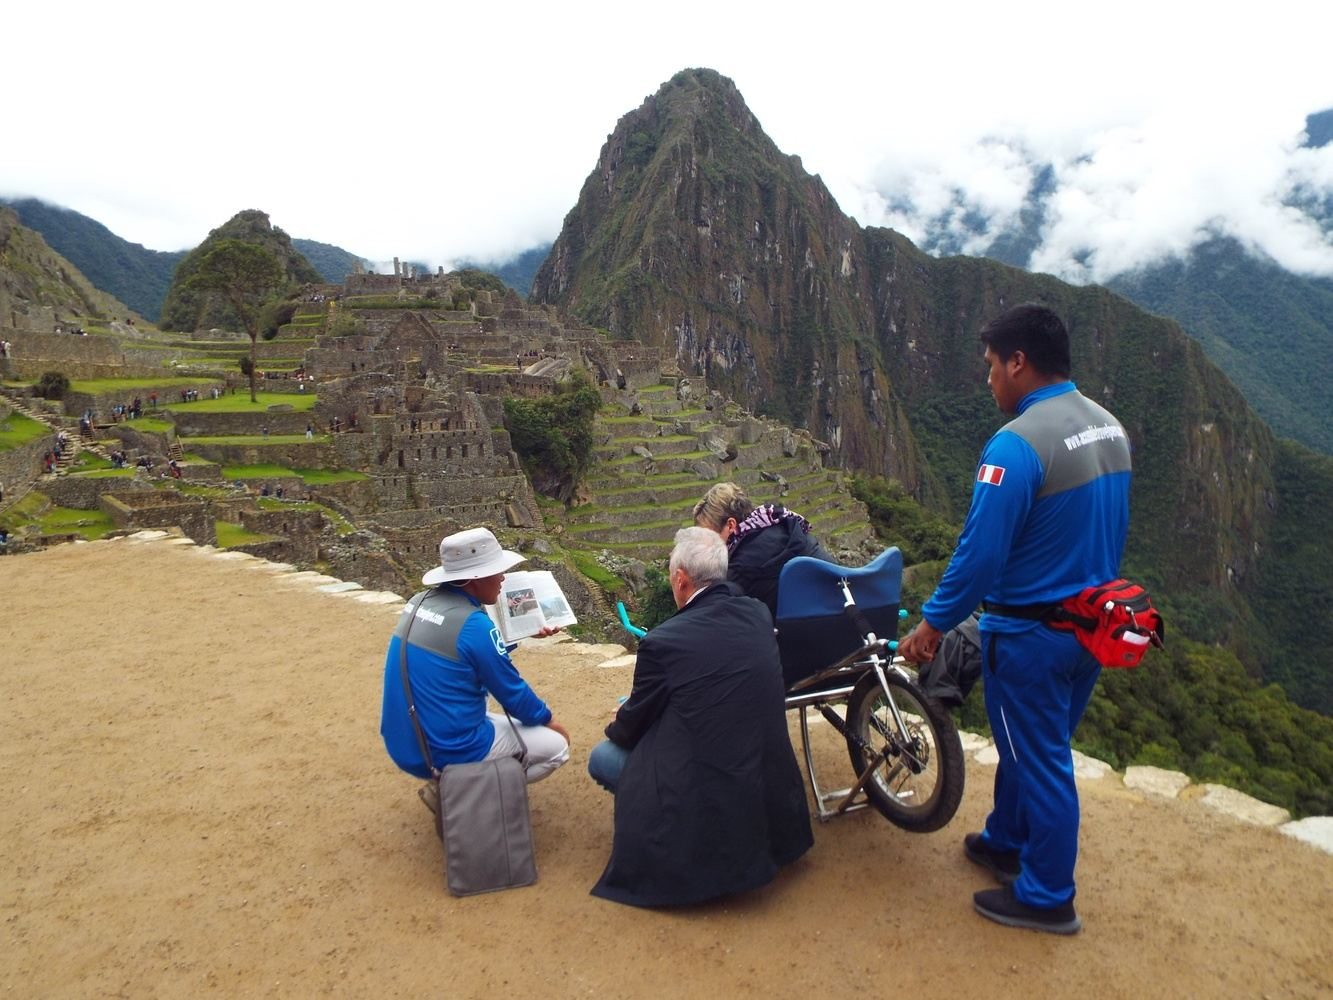 JUST CUSCO - ONLY SERVICES - NO HOTELS